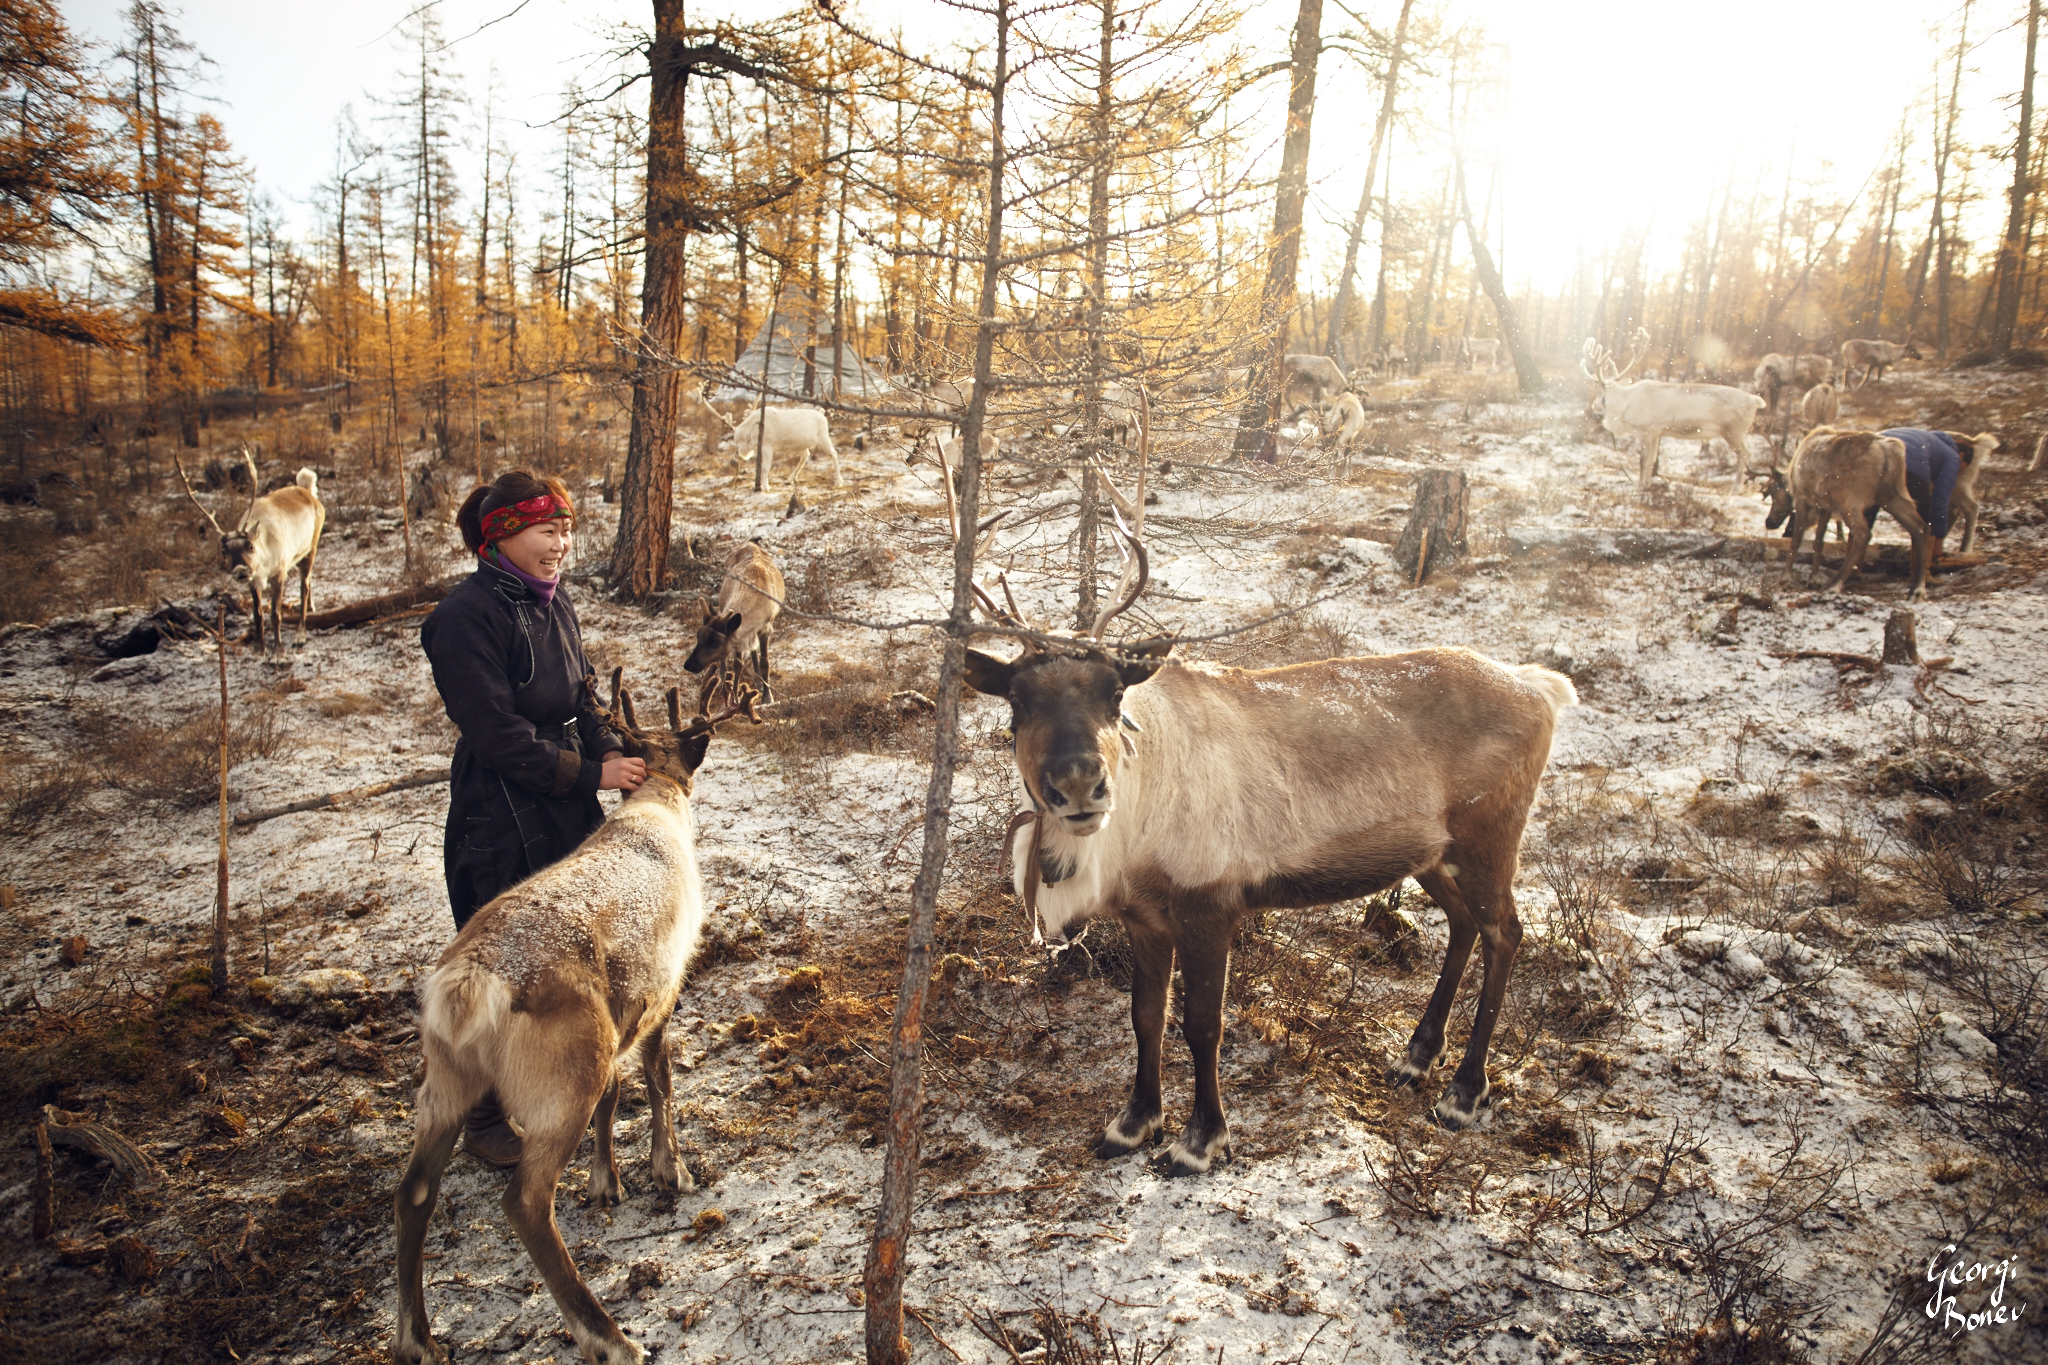 NARA AND HER REINDEER IN THE EARLY MORNING NEAR THE BORDER OF SIBERIA, MONGOLIA